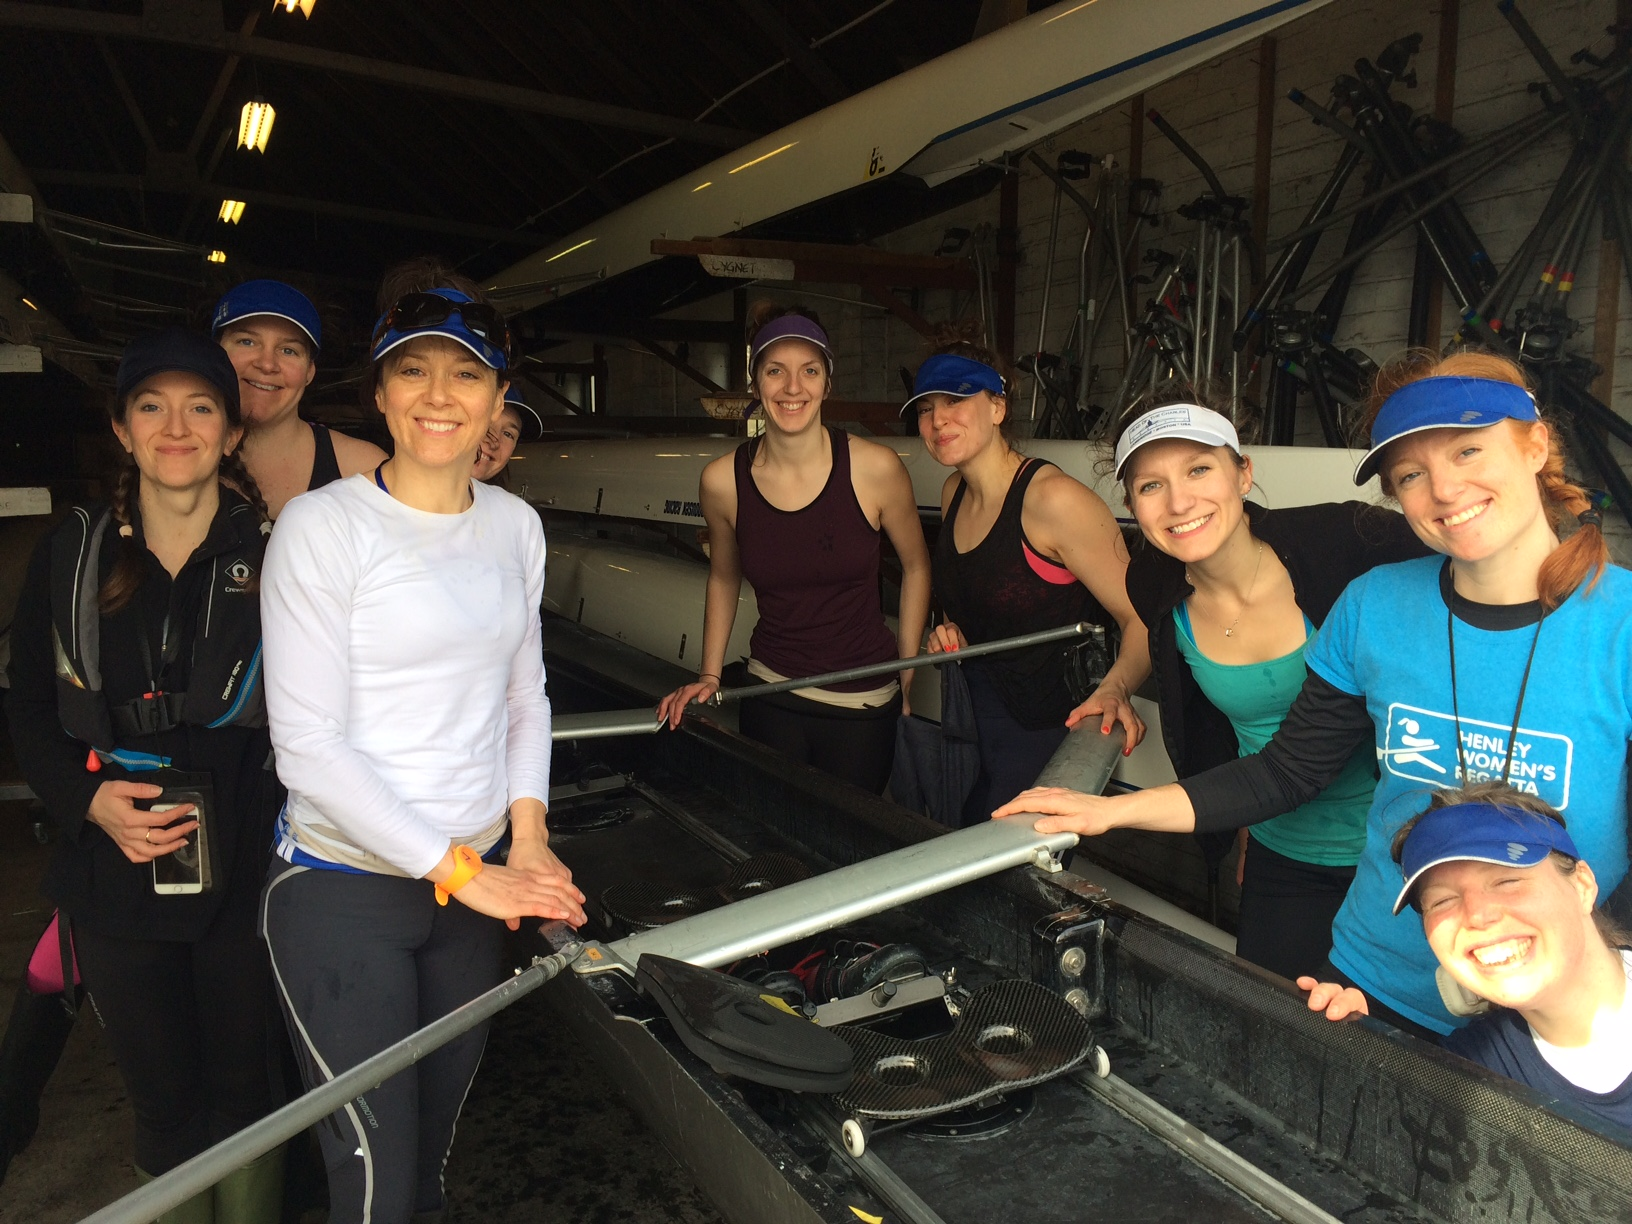 Rowing with the Barnes Bridge Ladies – a true story